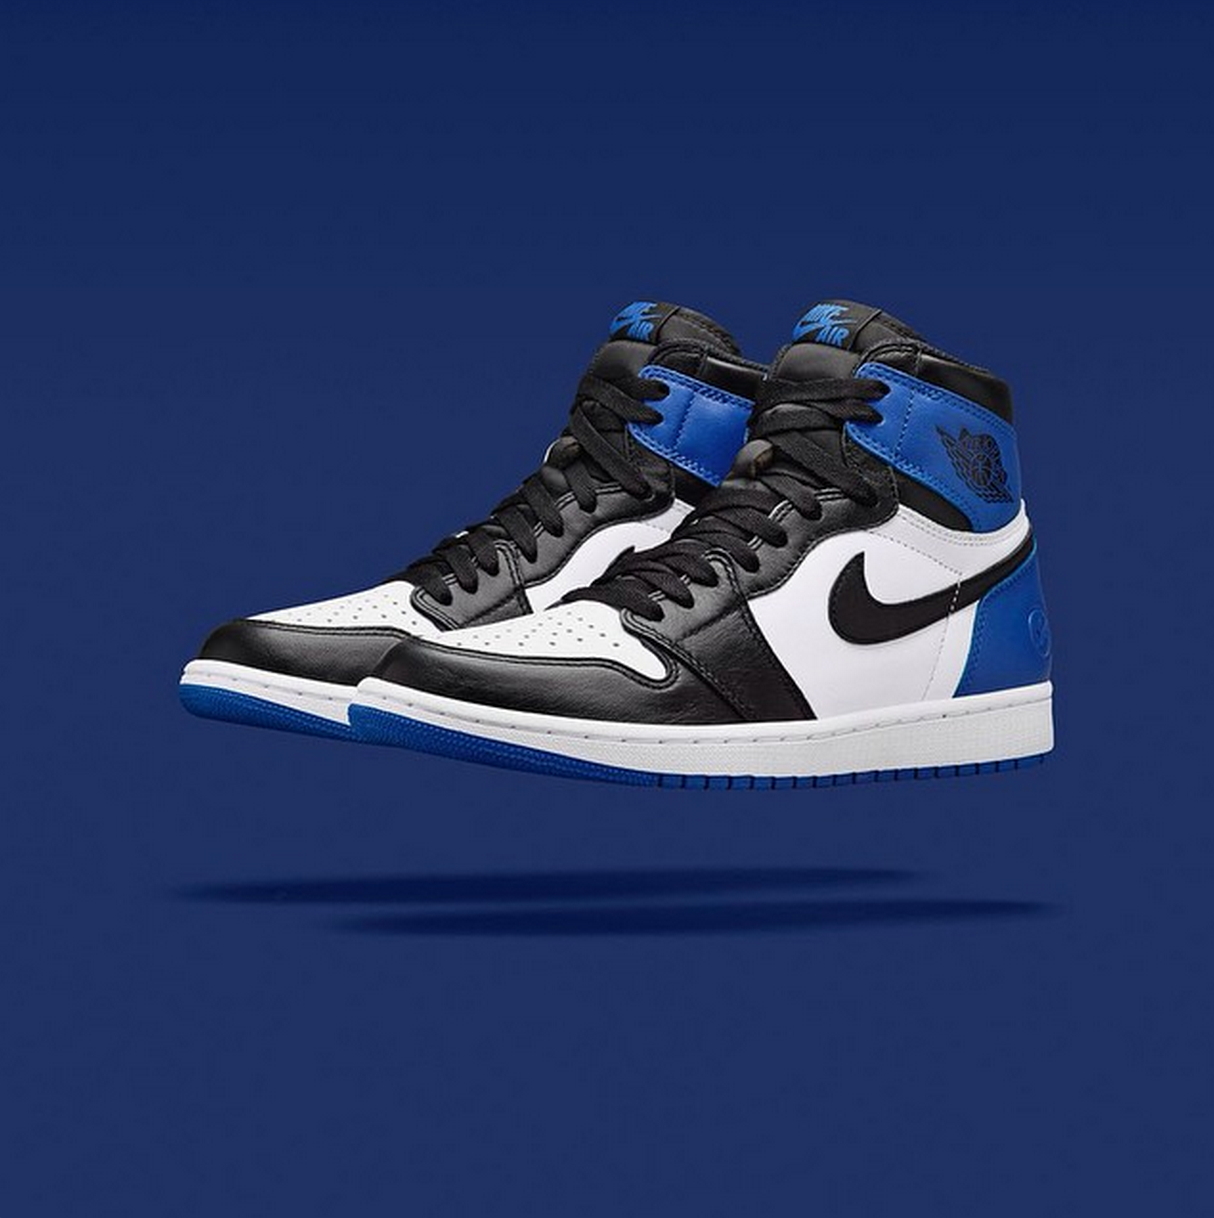 The Fragment x Air Jordan 1 release date is officially set! The shoe,  classically styled in premium leather of blue and black and white, will hit  stores .